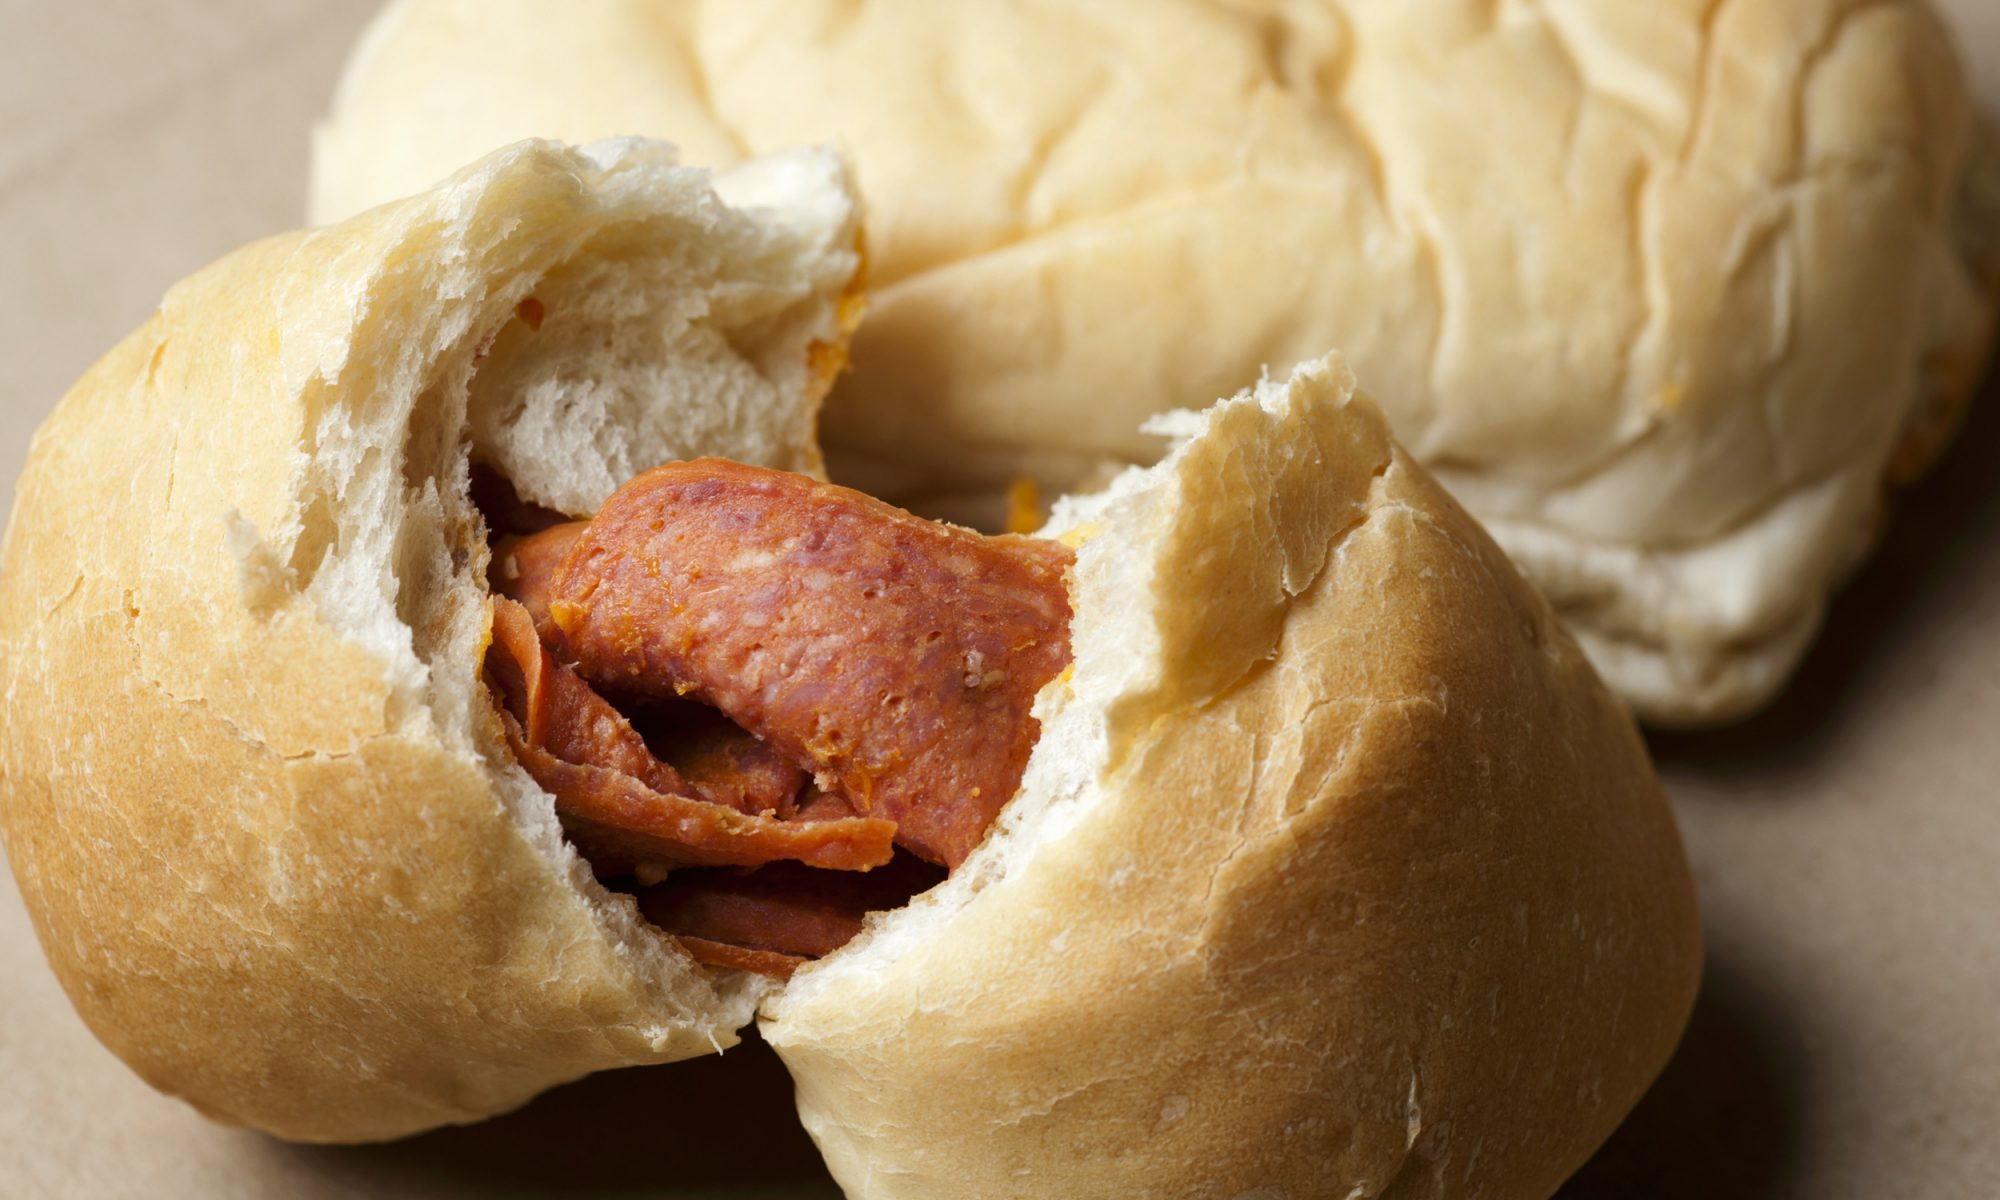 EC: The Best Pepperoni Roll in West Virginia